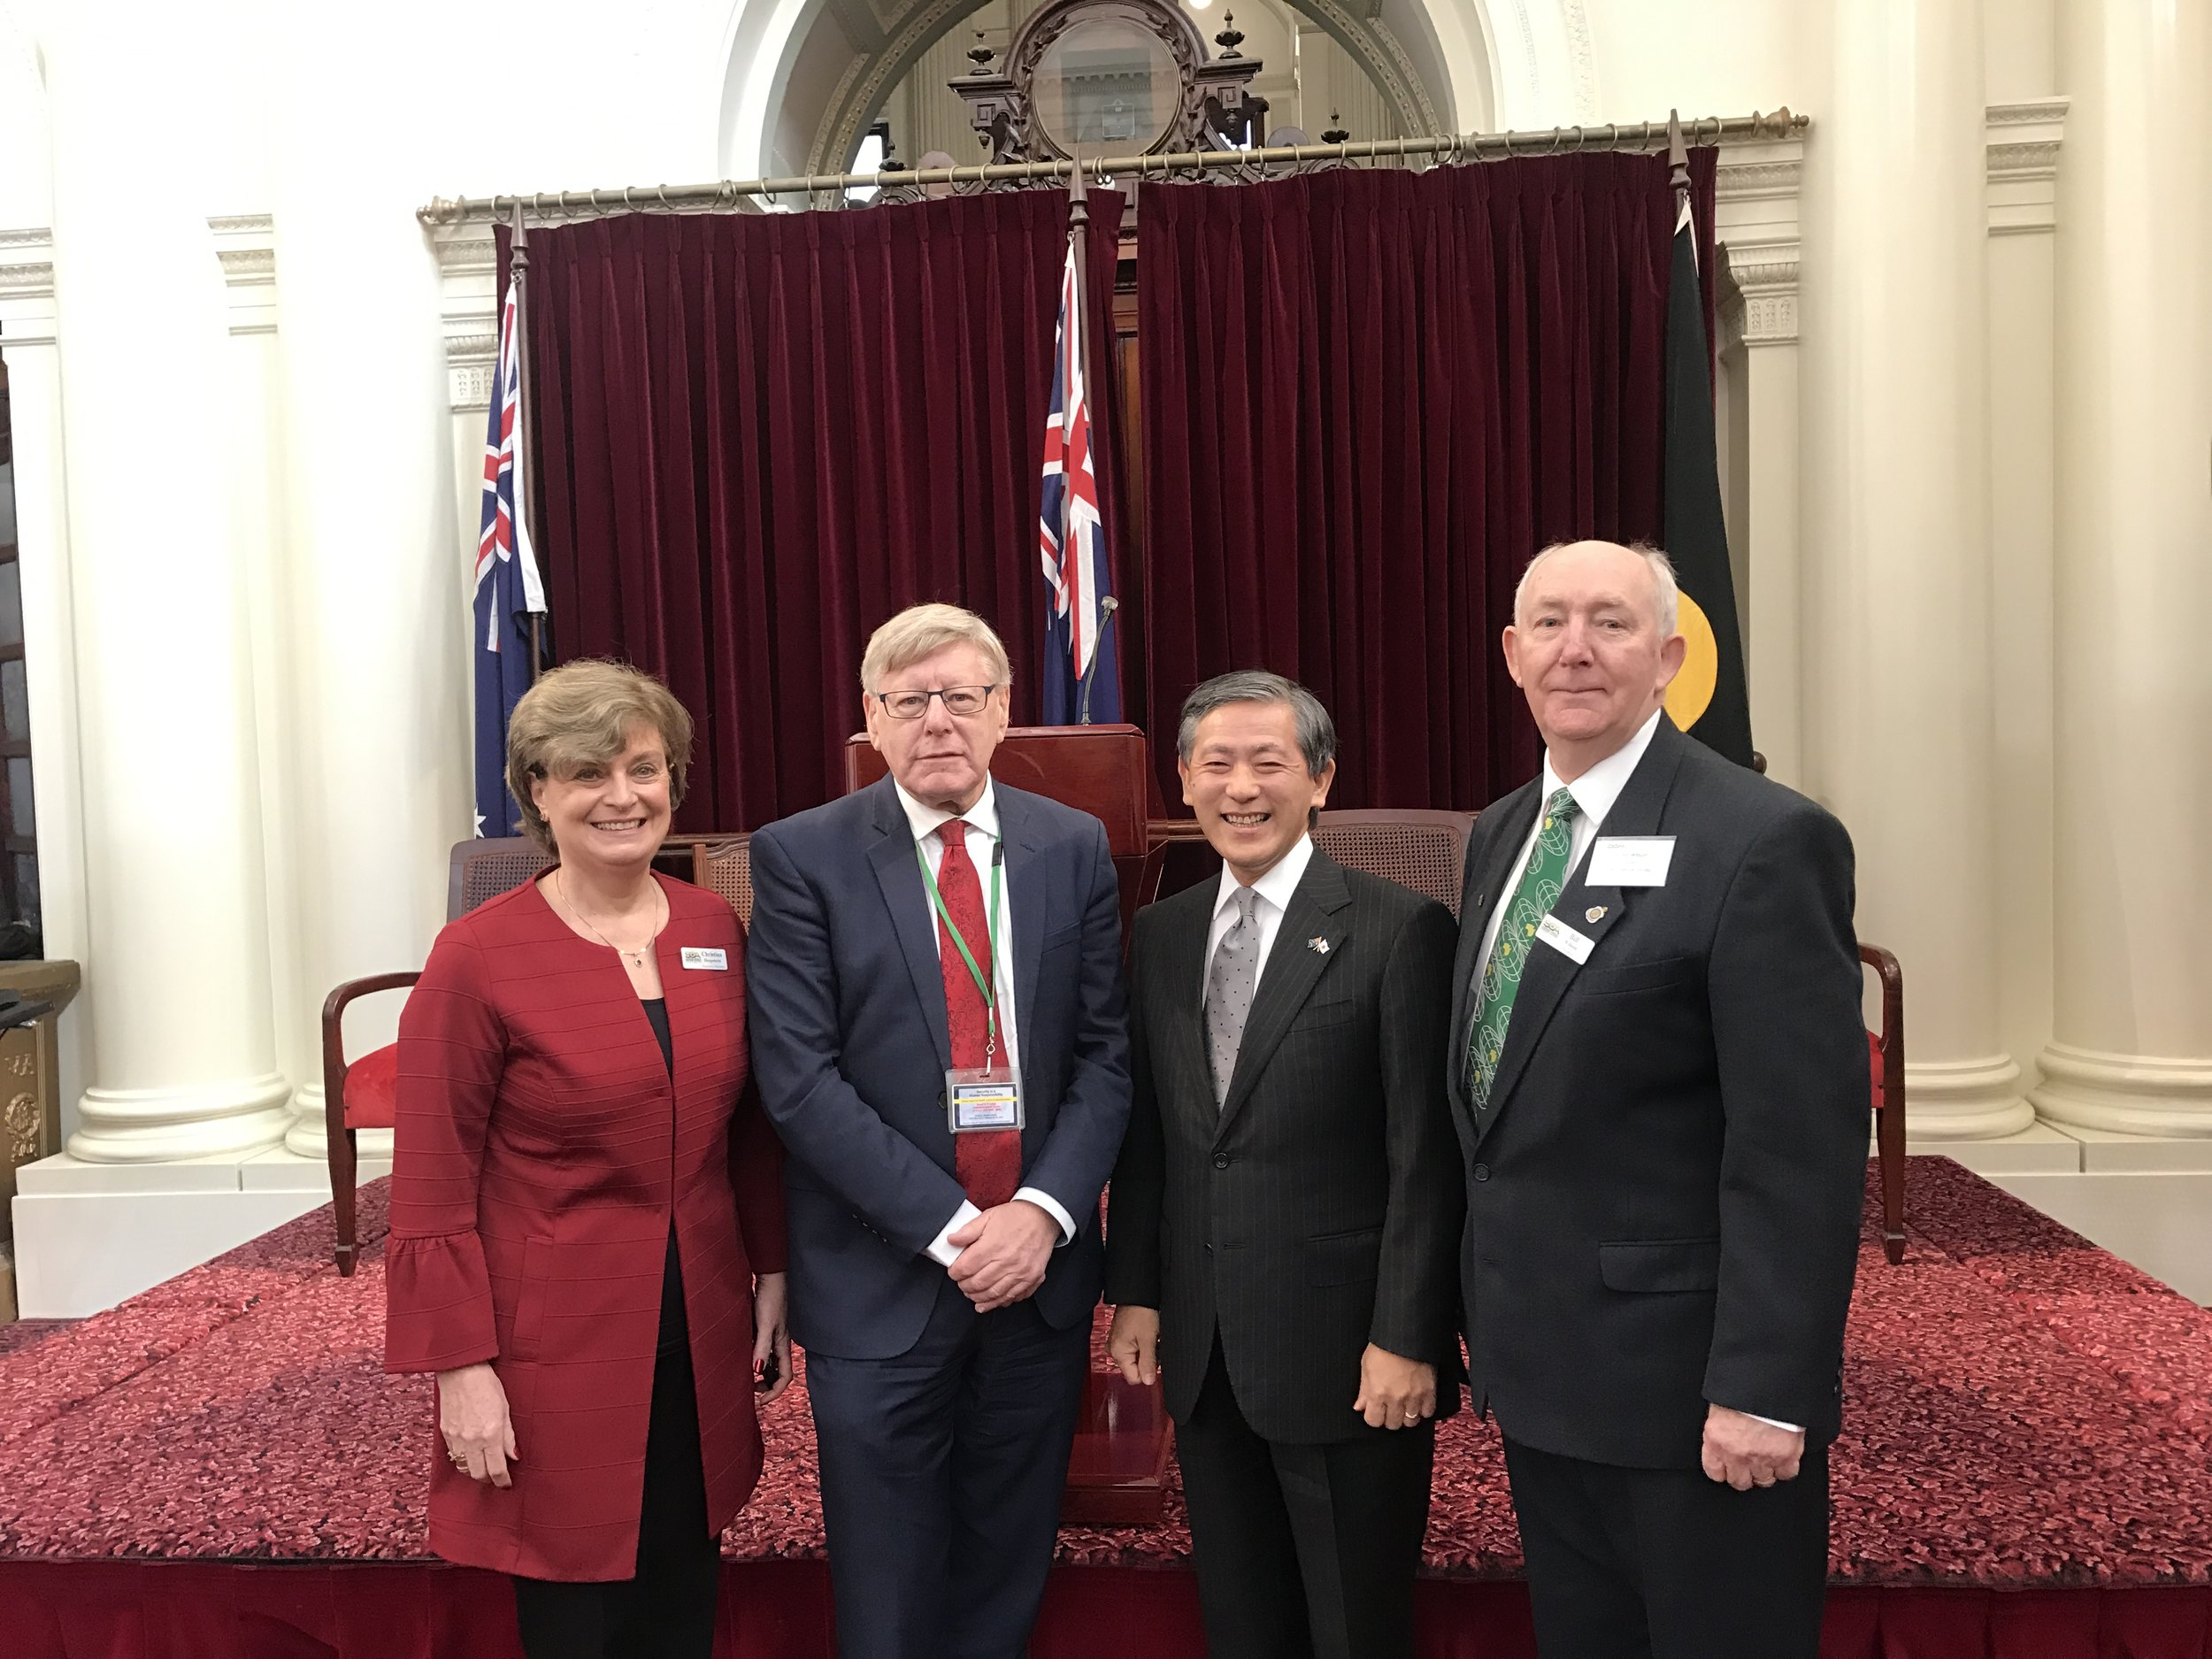 Christina Despoteris (Sister Cities Australia), Mr Kazuyoshi Matsunaga (Japanese Consul General), Mr Bill Wilson (President, Sister Cities Australia)